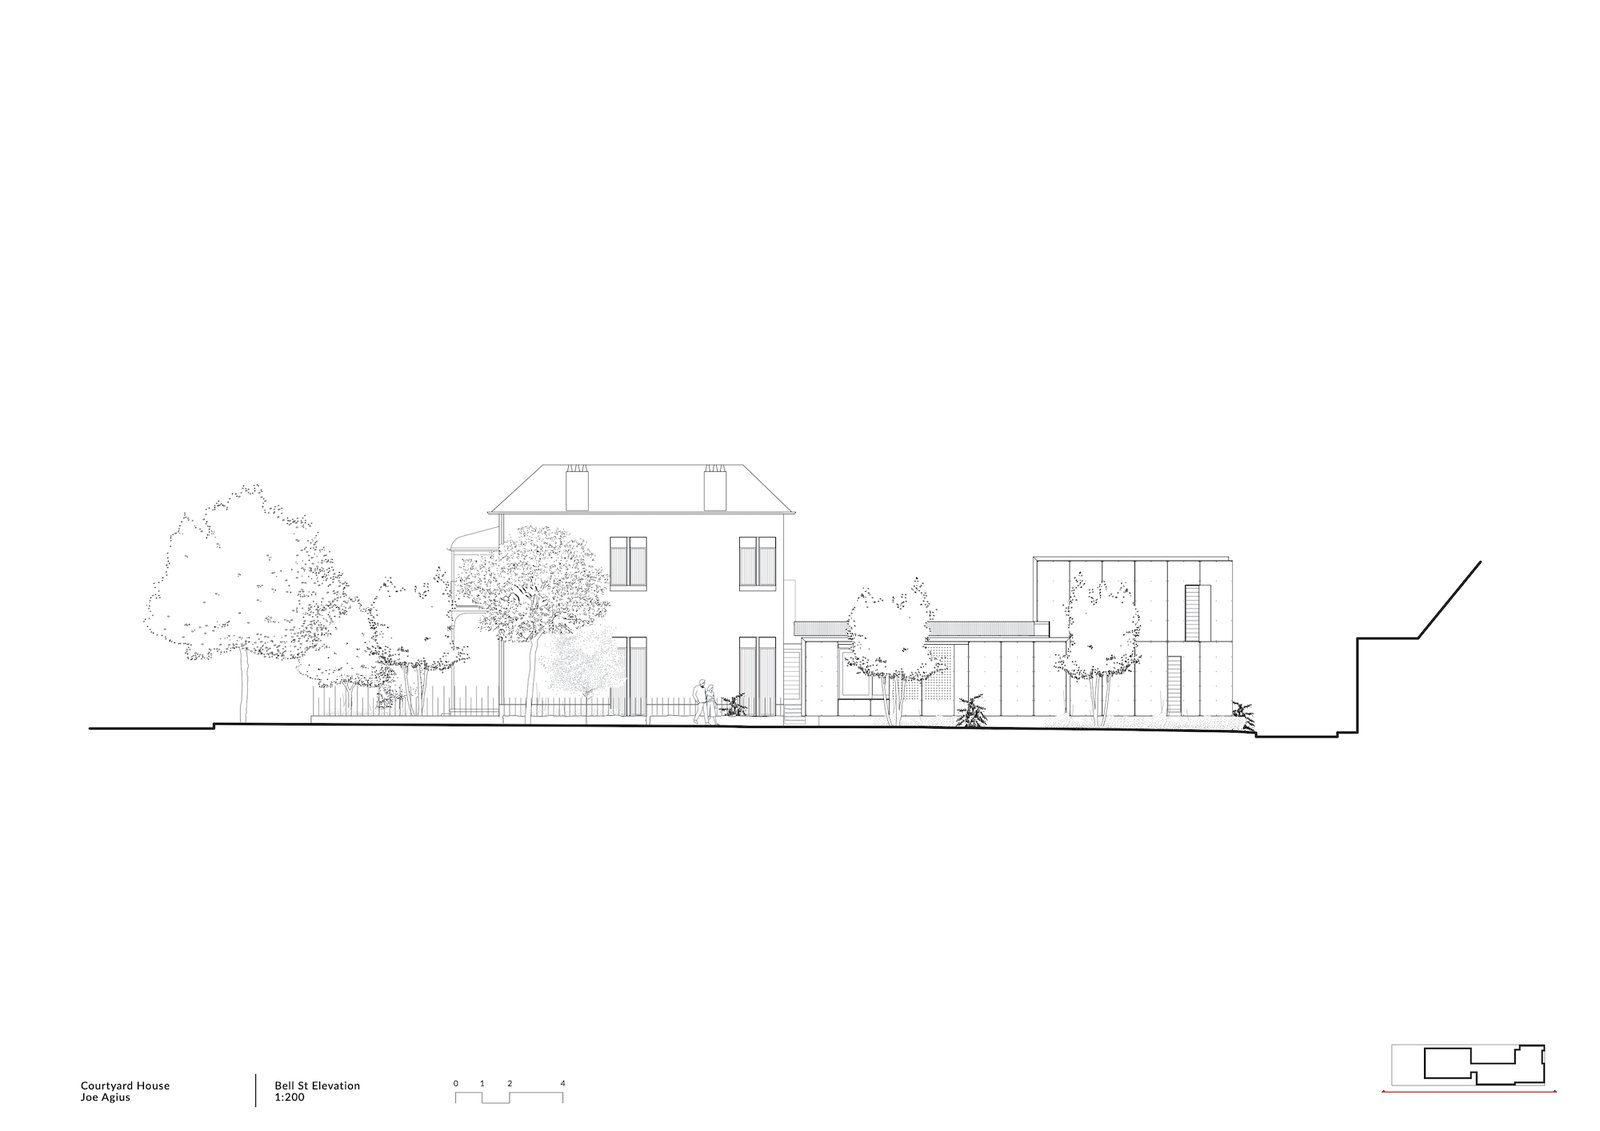 Bell St Elevation by COX before the renovation.